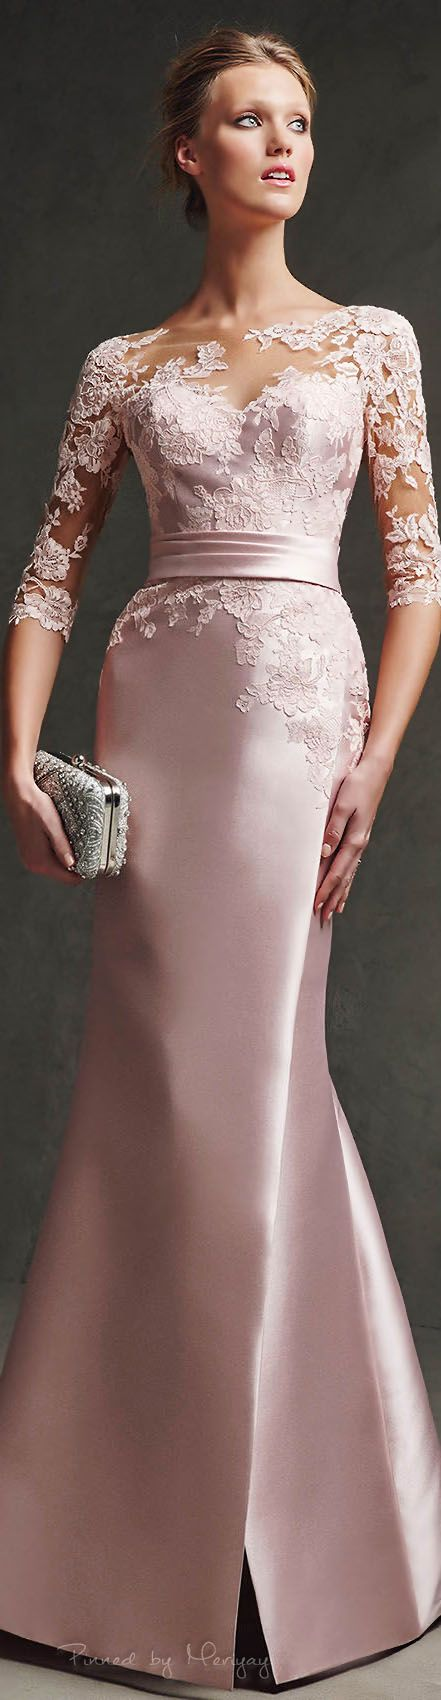 Pronovias 2016. It would make a lovely Mother of the bride dress.